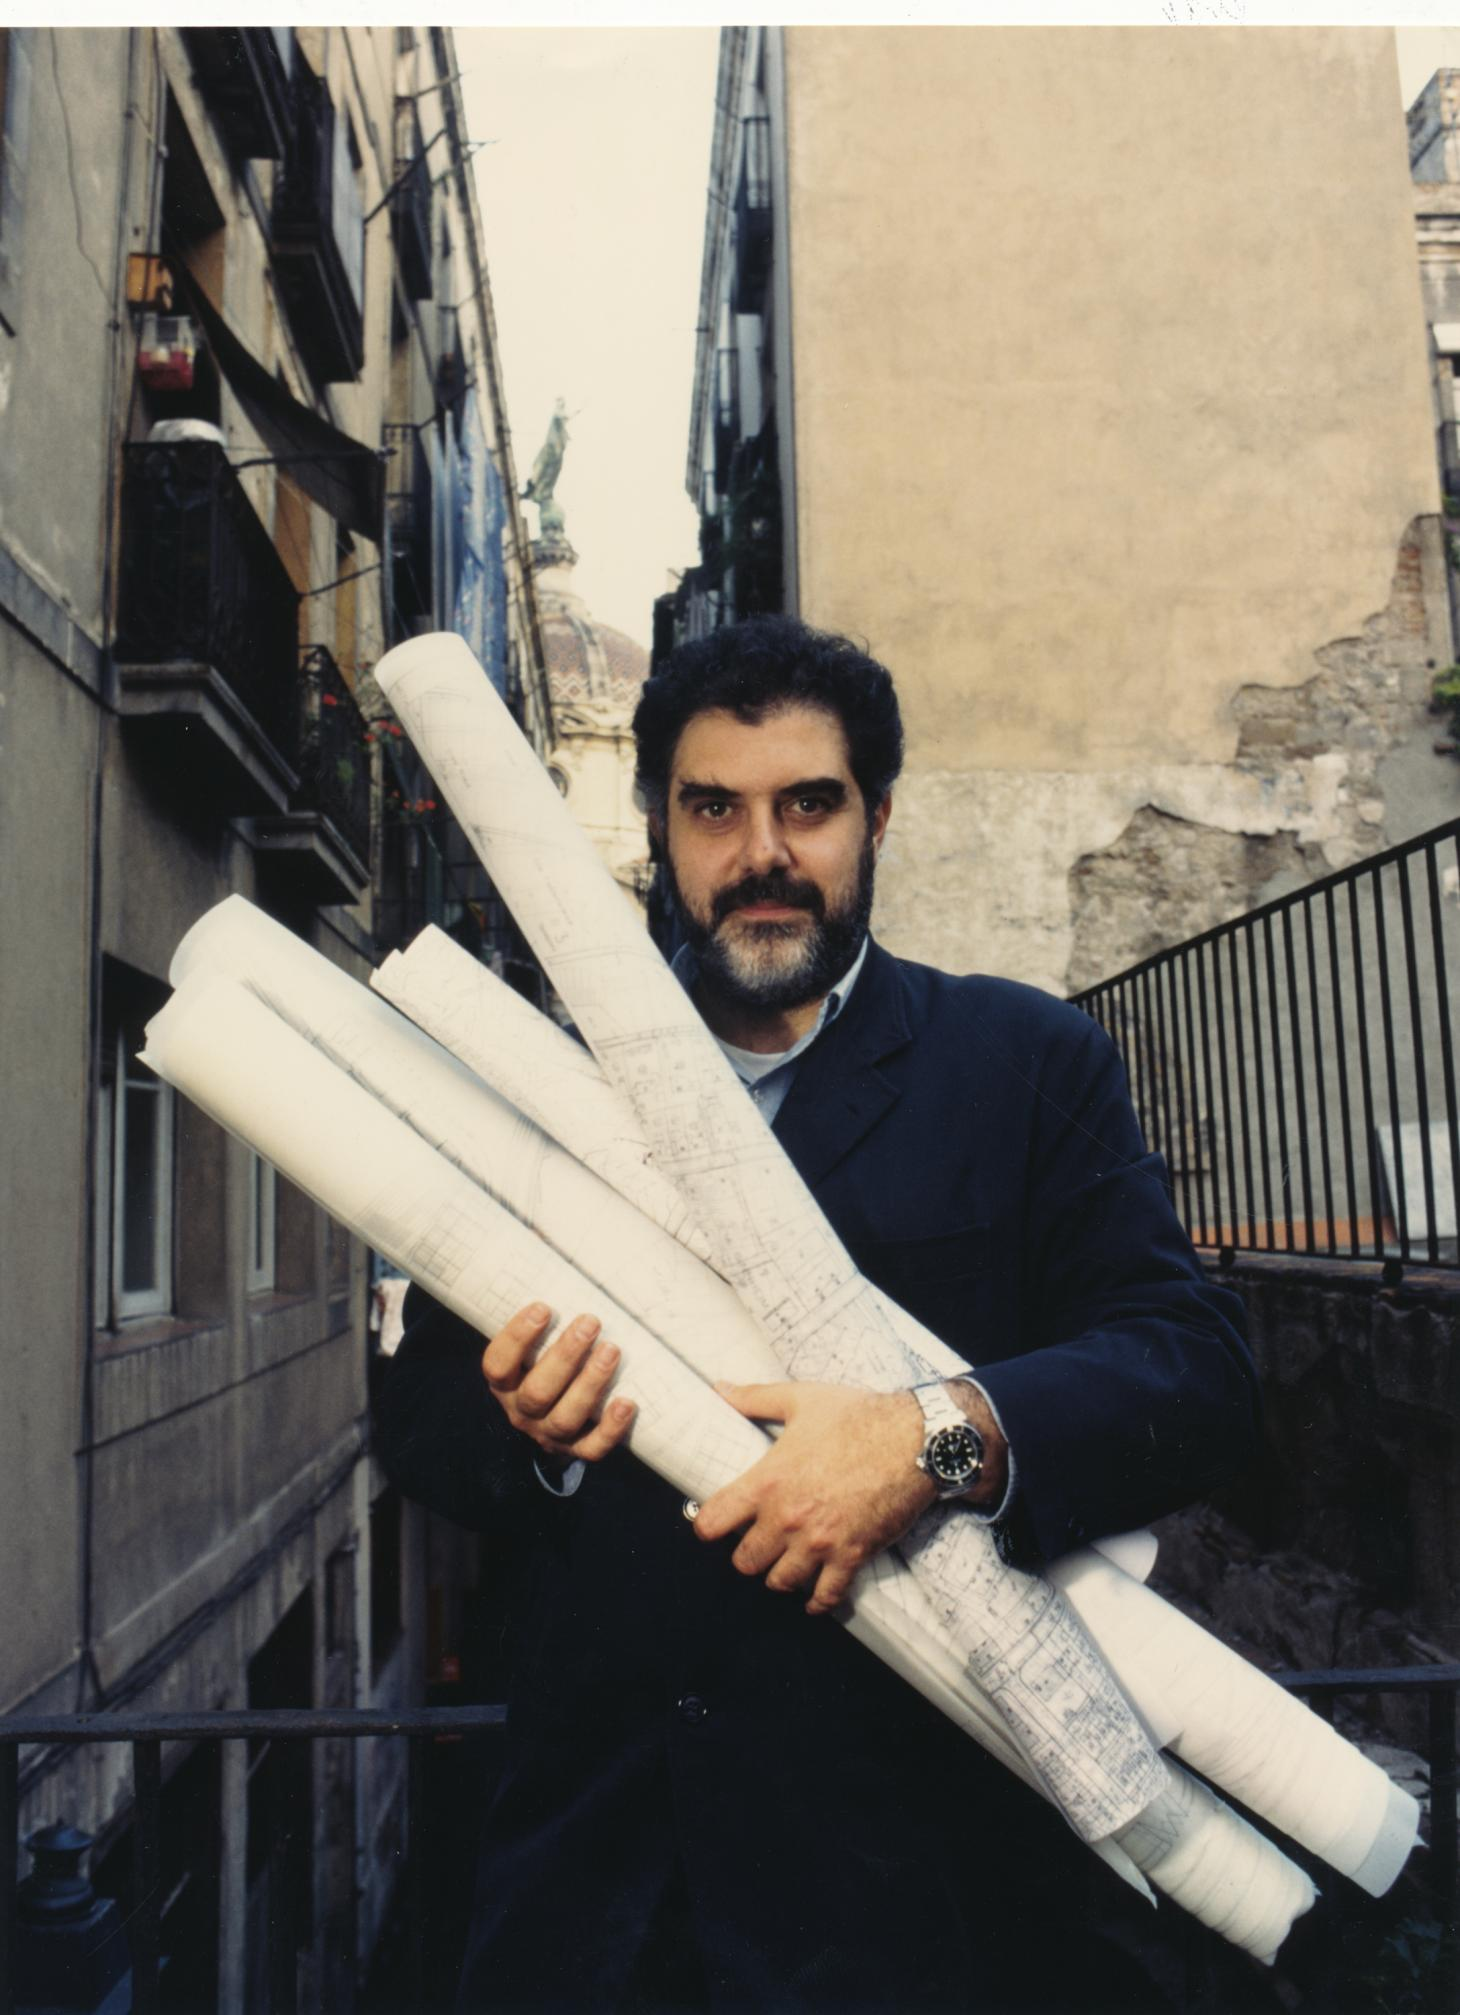 A portrait of the late architect Enric Miralles